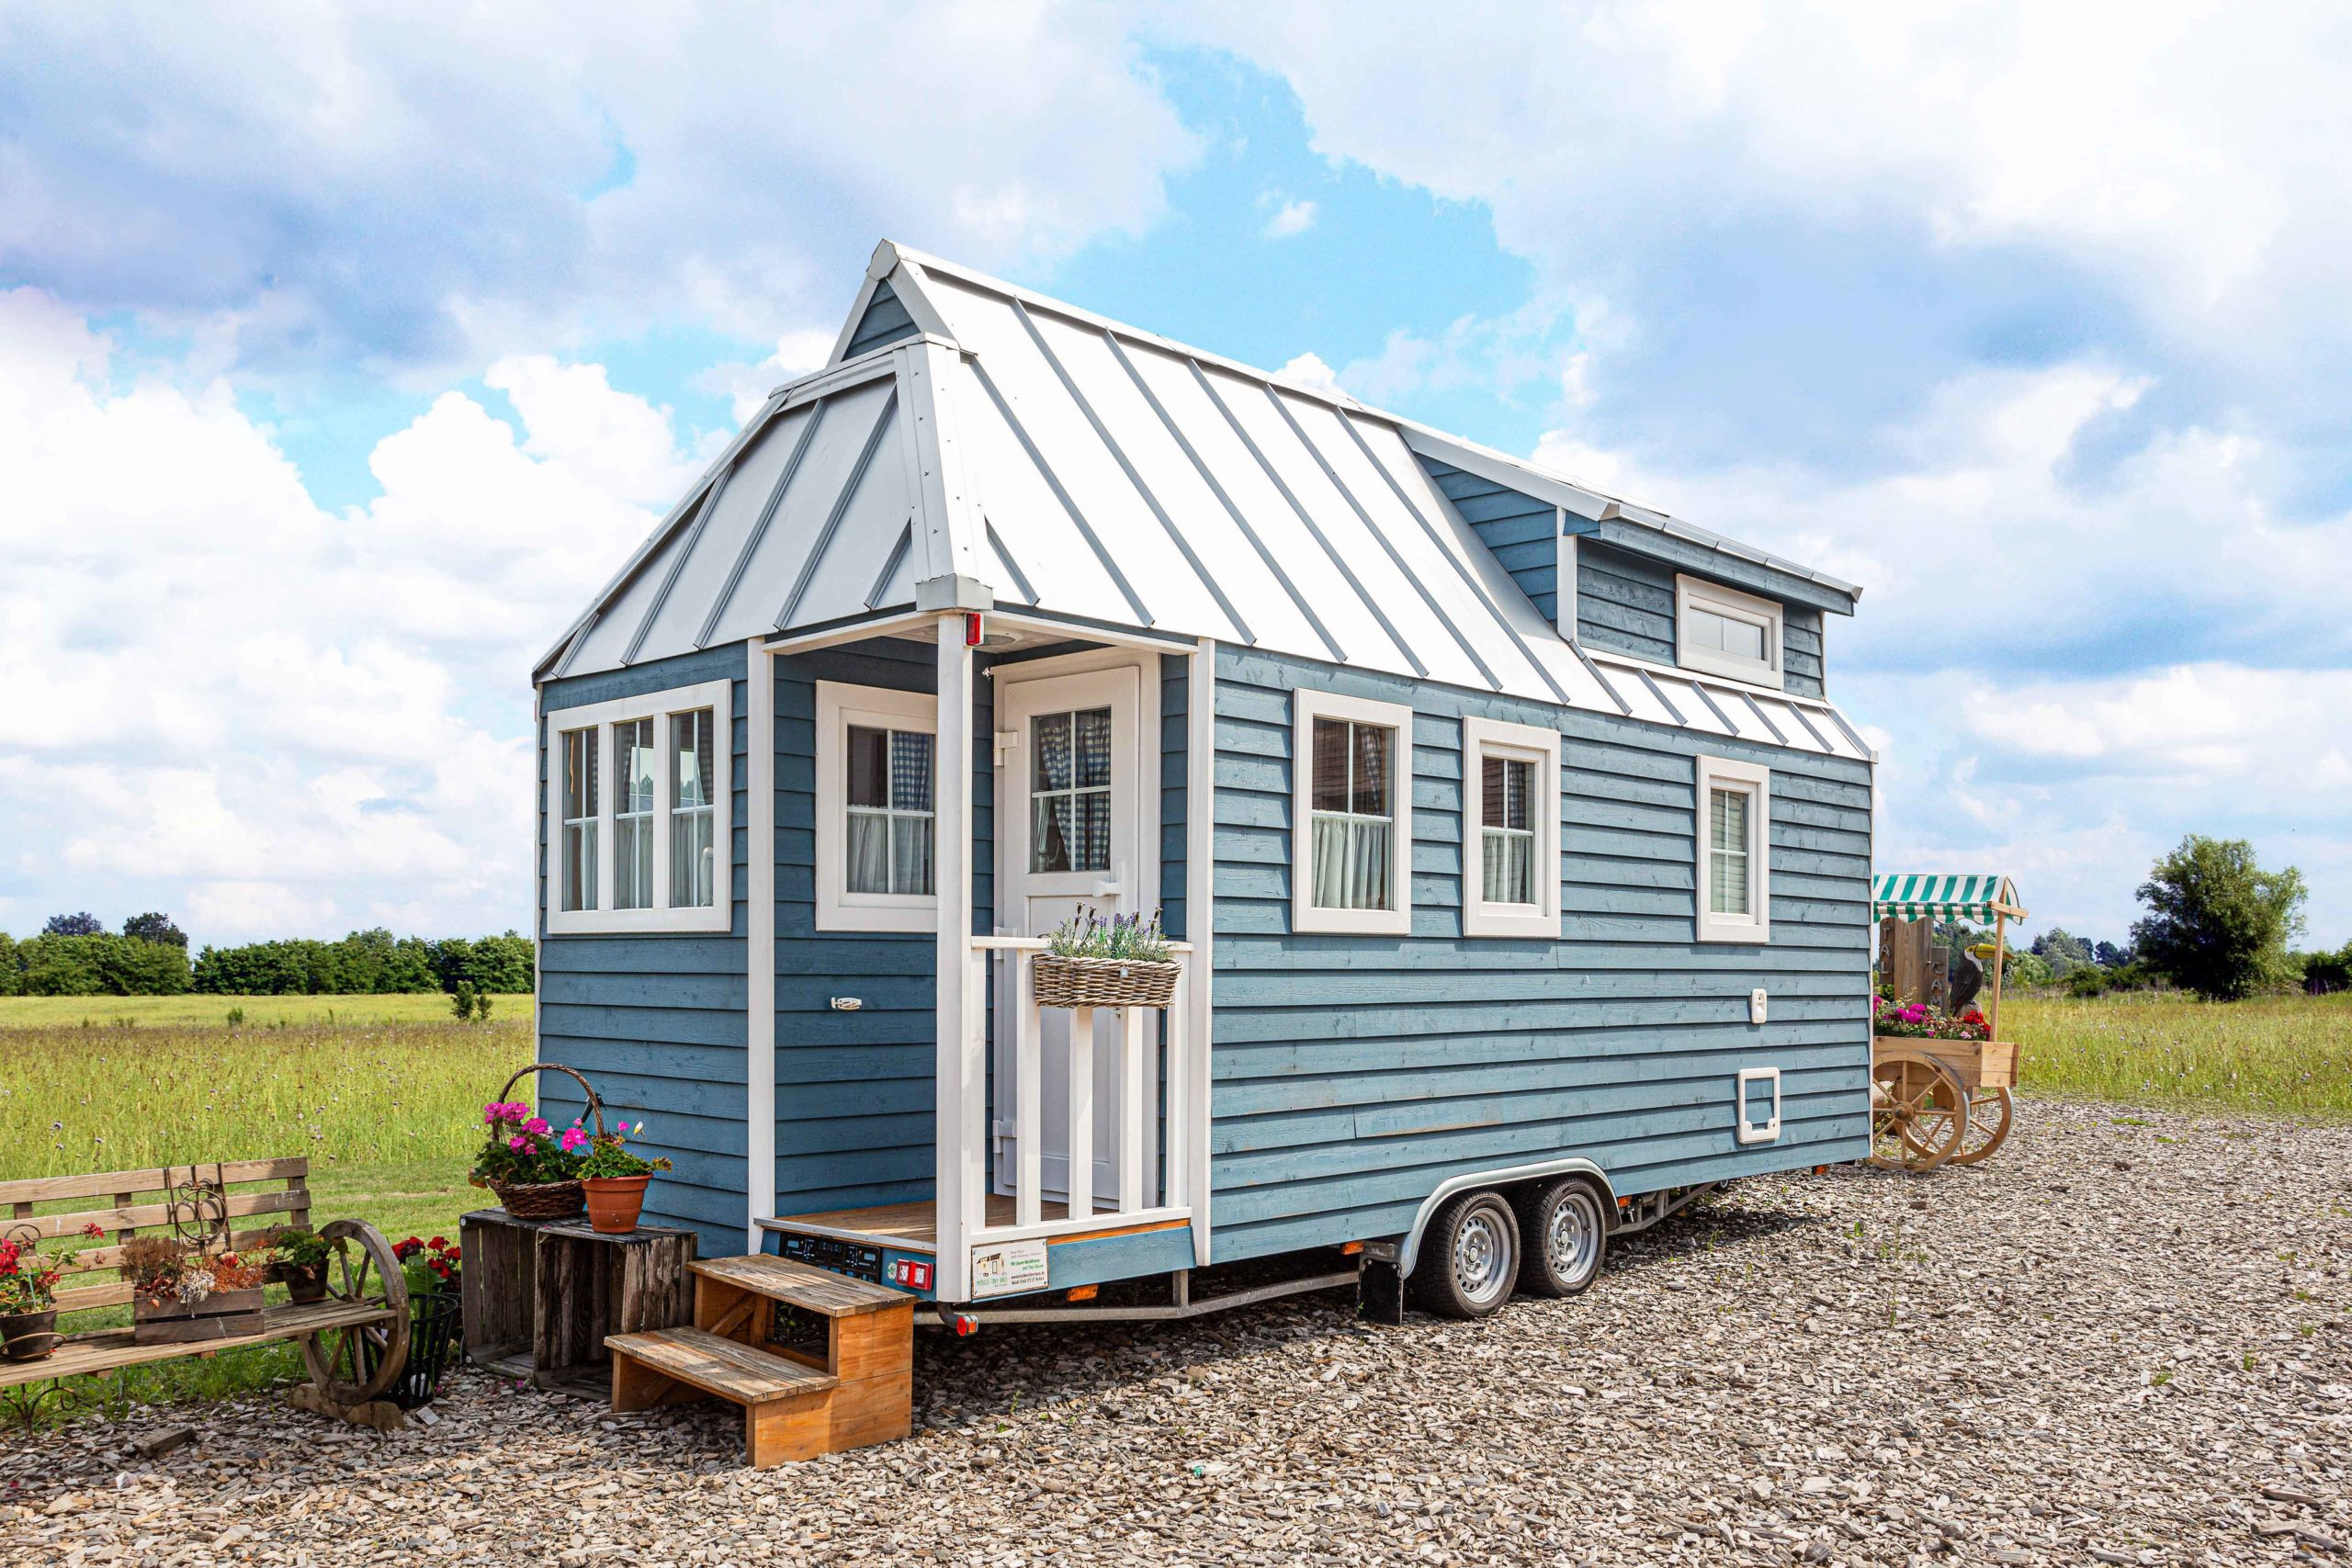 mobiles-tiny-house-island-vital-camp-gmbh-01